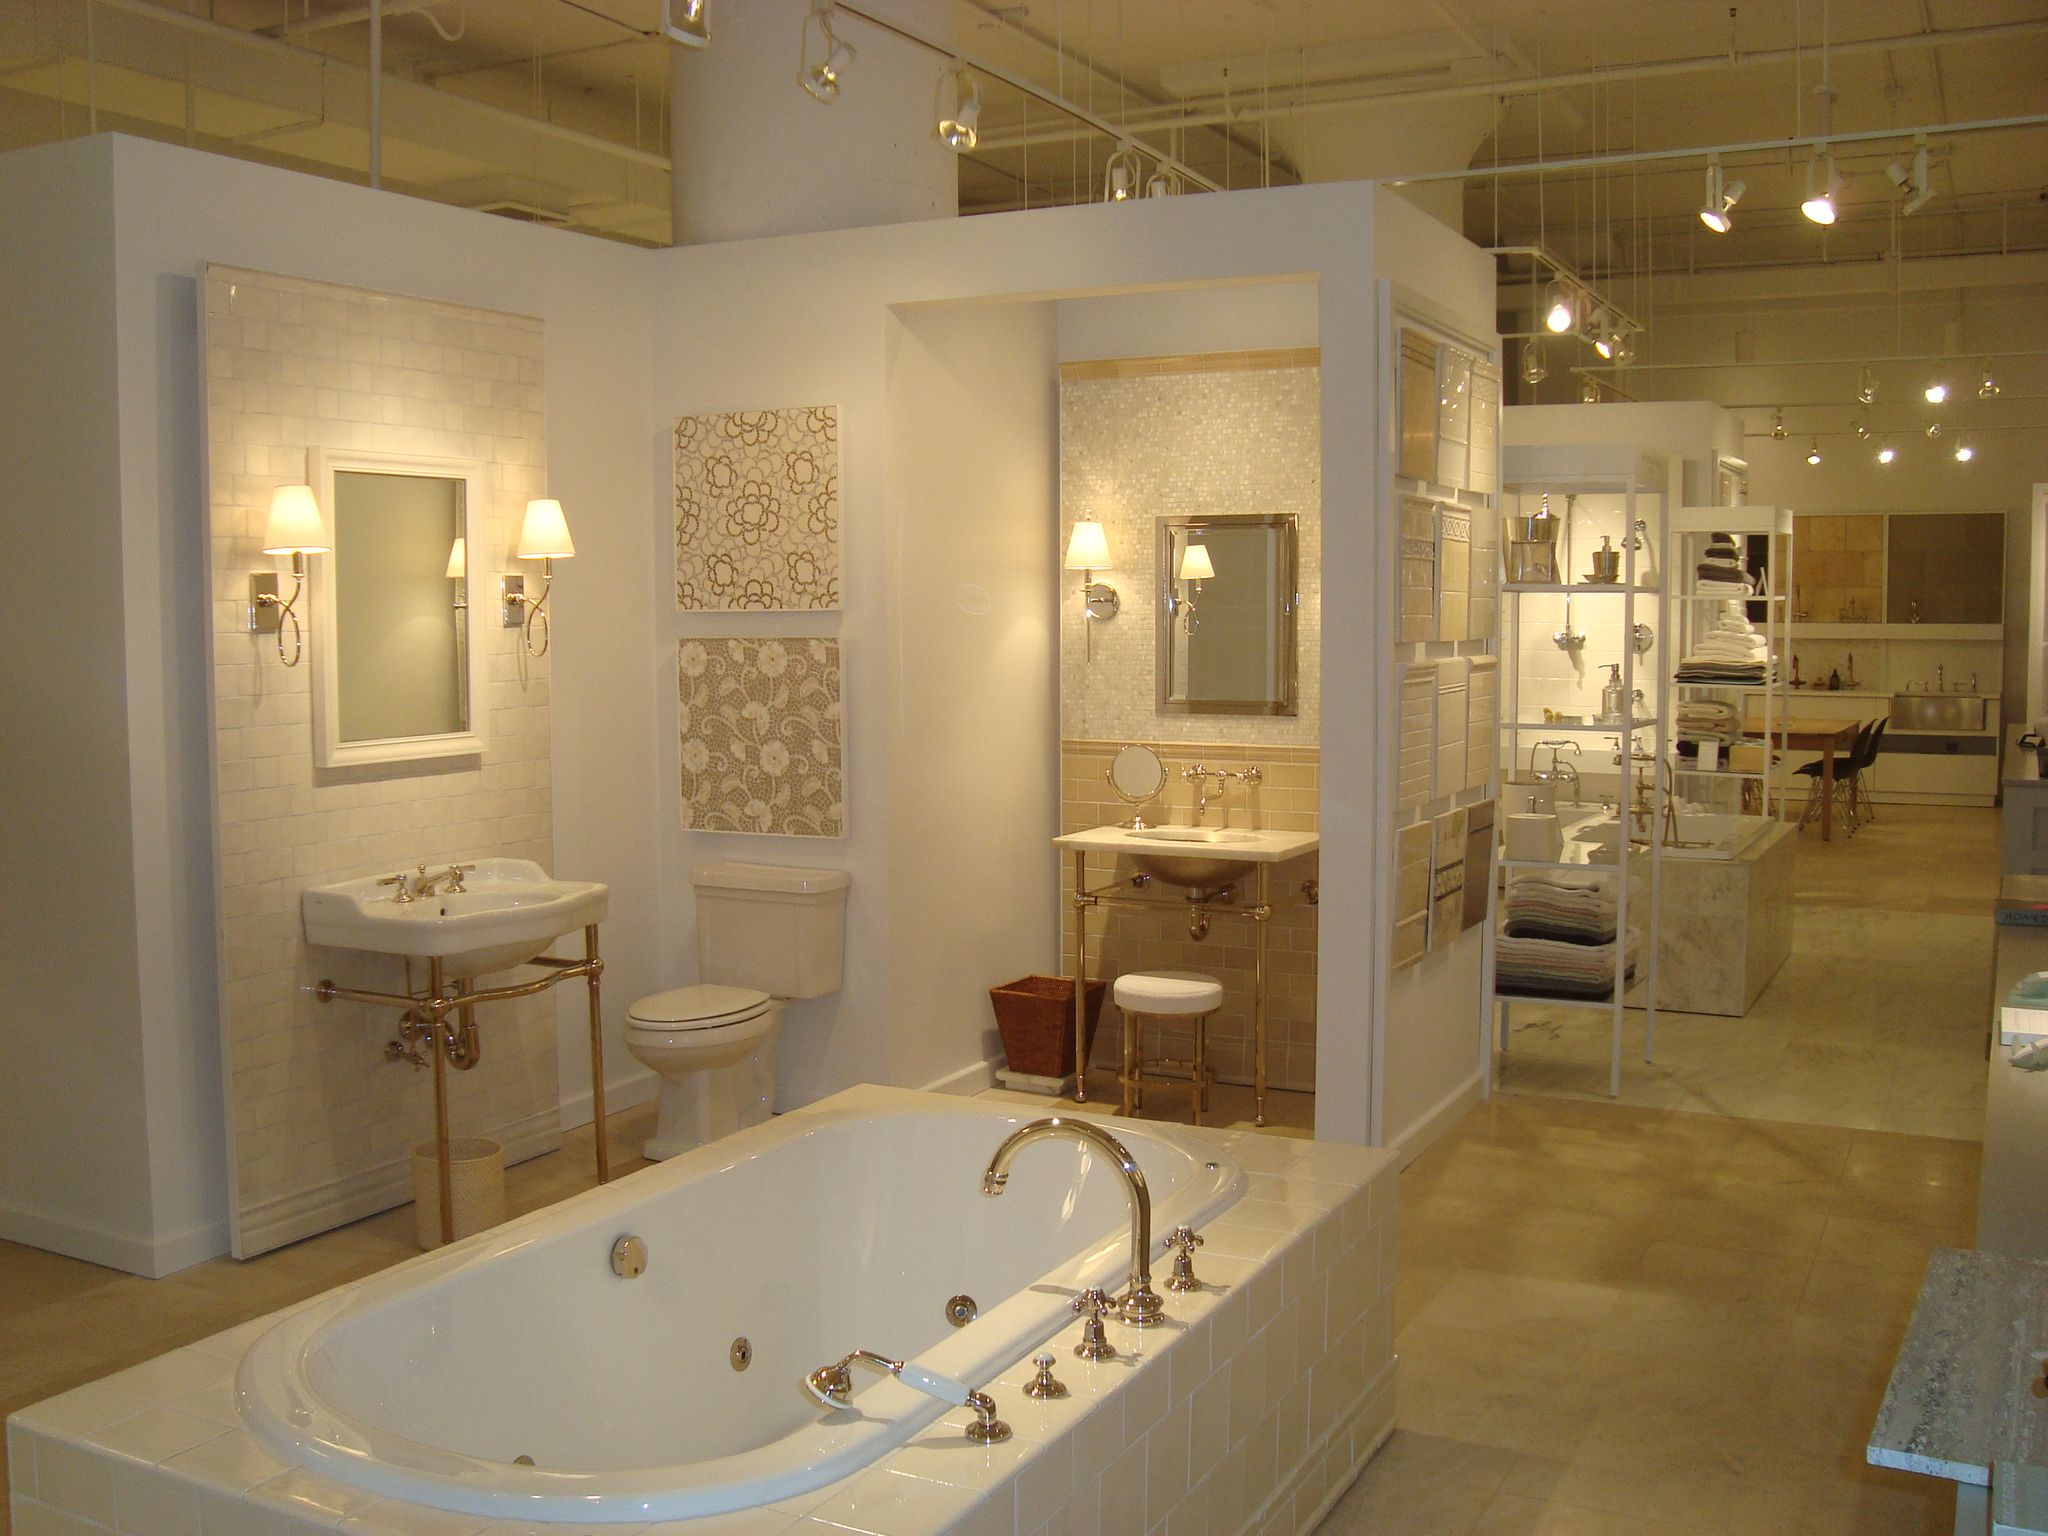 Bathroom Design Showrooms Waterworks Boston Design Center Showroom Display Waterworks